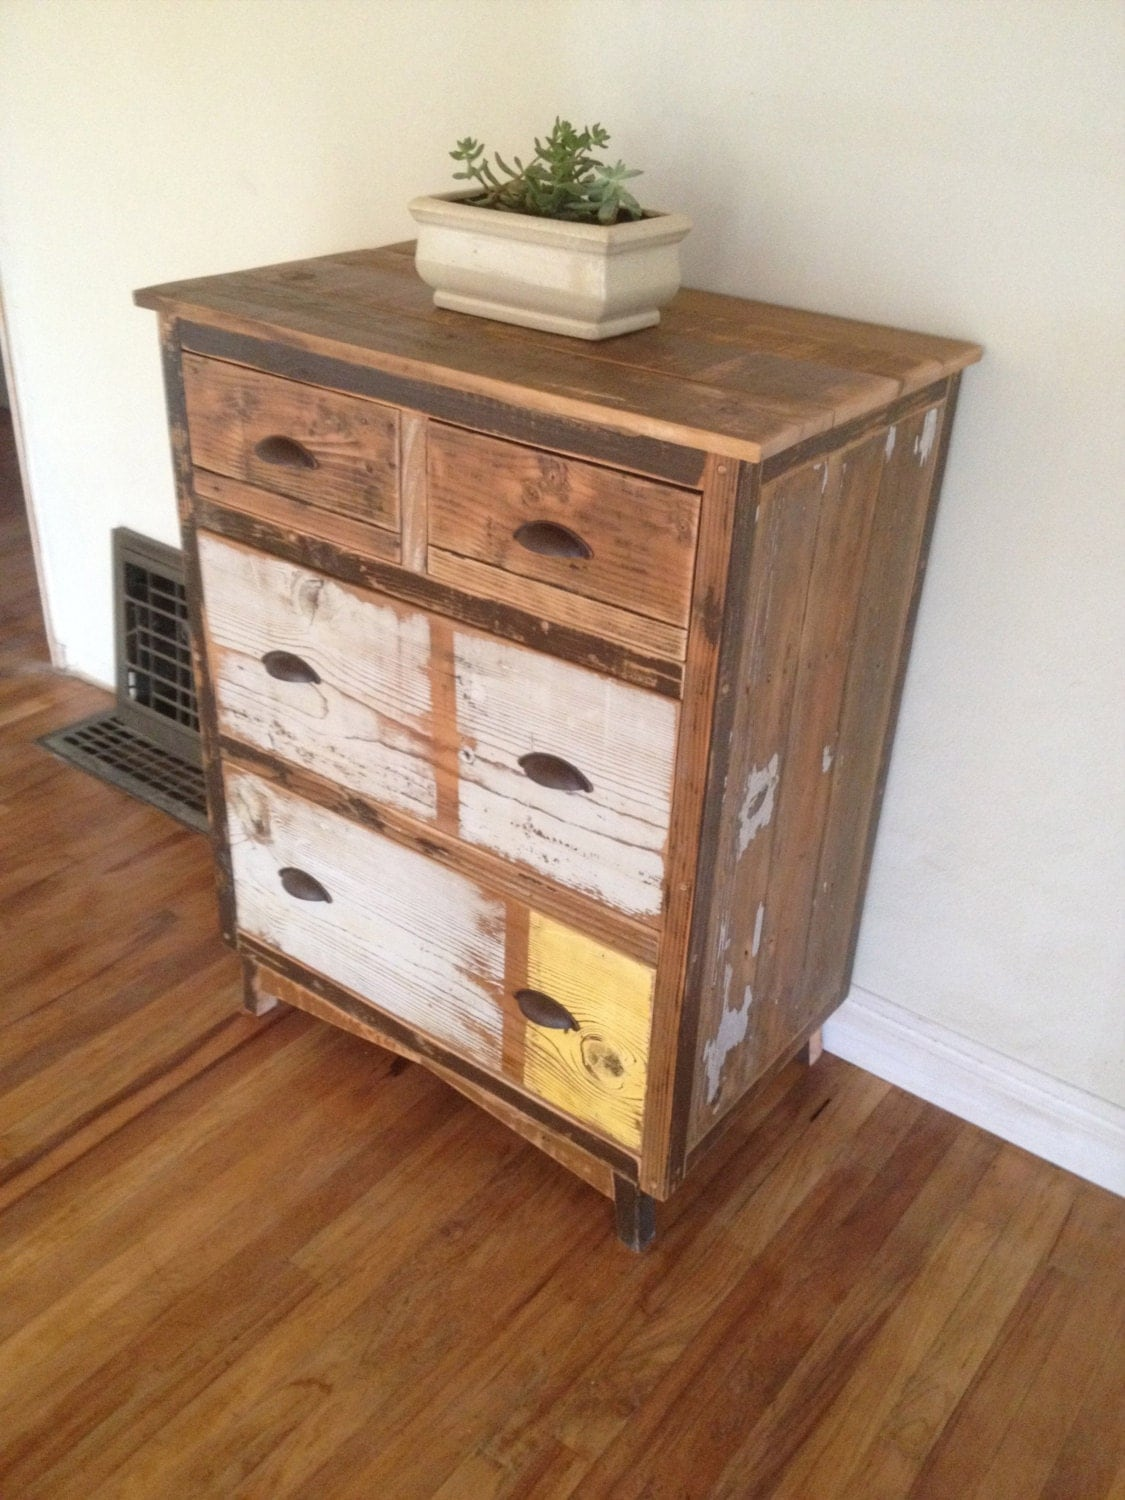 Wood Dressers And Chest Of Drawers ~ Reclaimed wood chest of drawers dresser